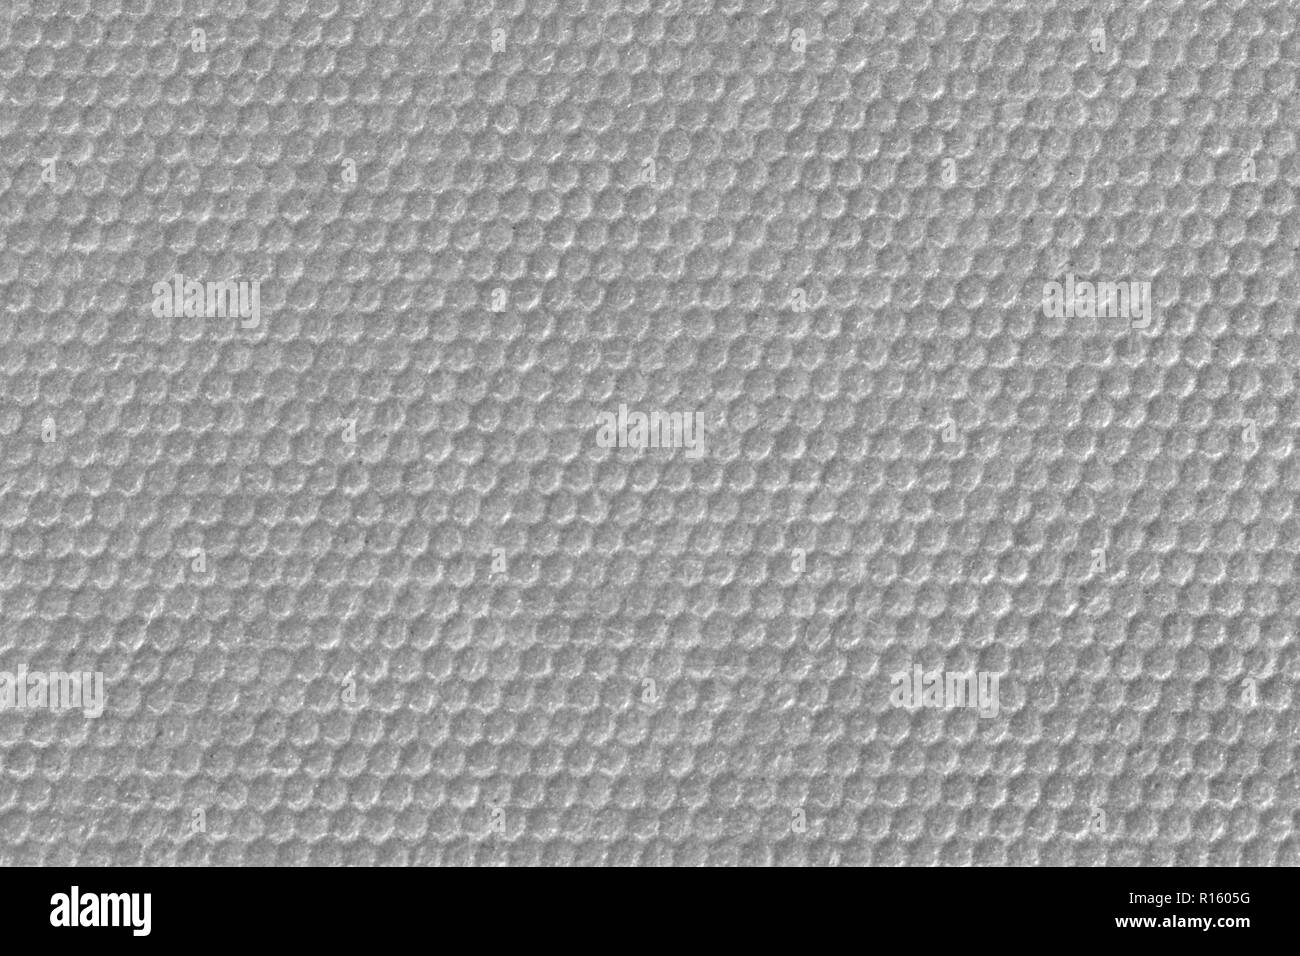 Soft gray background. Extremely high resolution of gray paper. - Stock Image